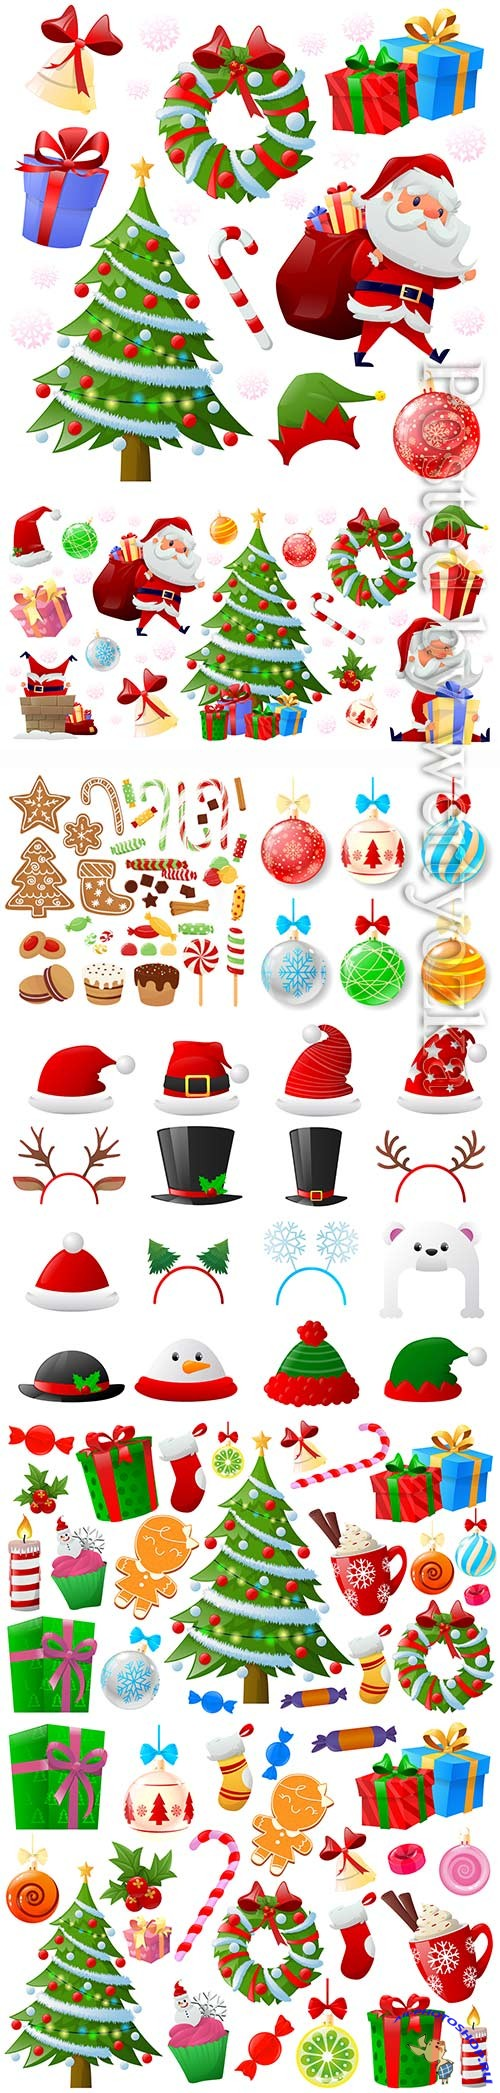 Cartoon colorful christmas element vector